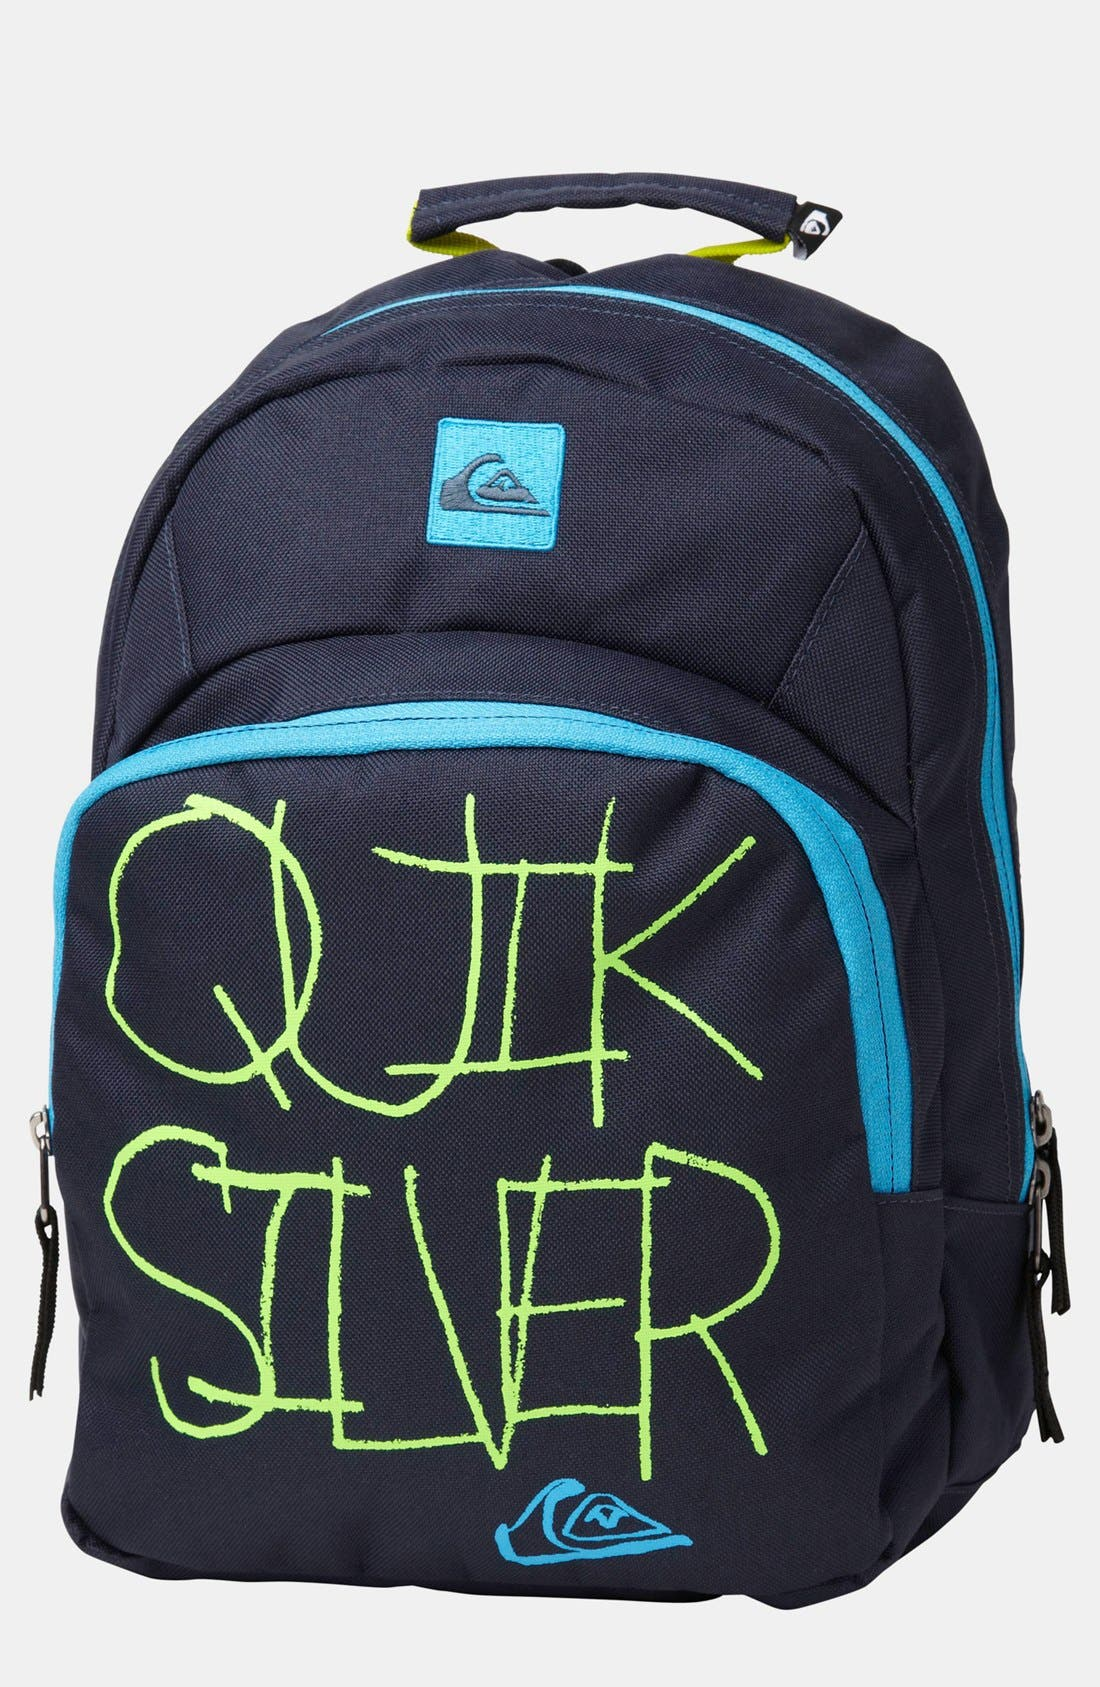 Alternate Image 1 Selected - Quiksilver 'Ankle Biter B' Backpack (Boys)